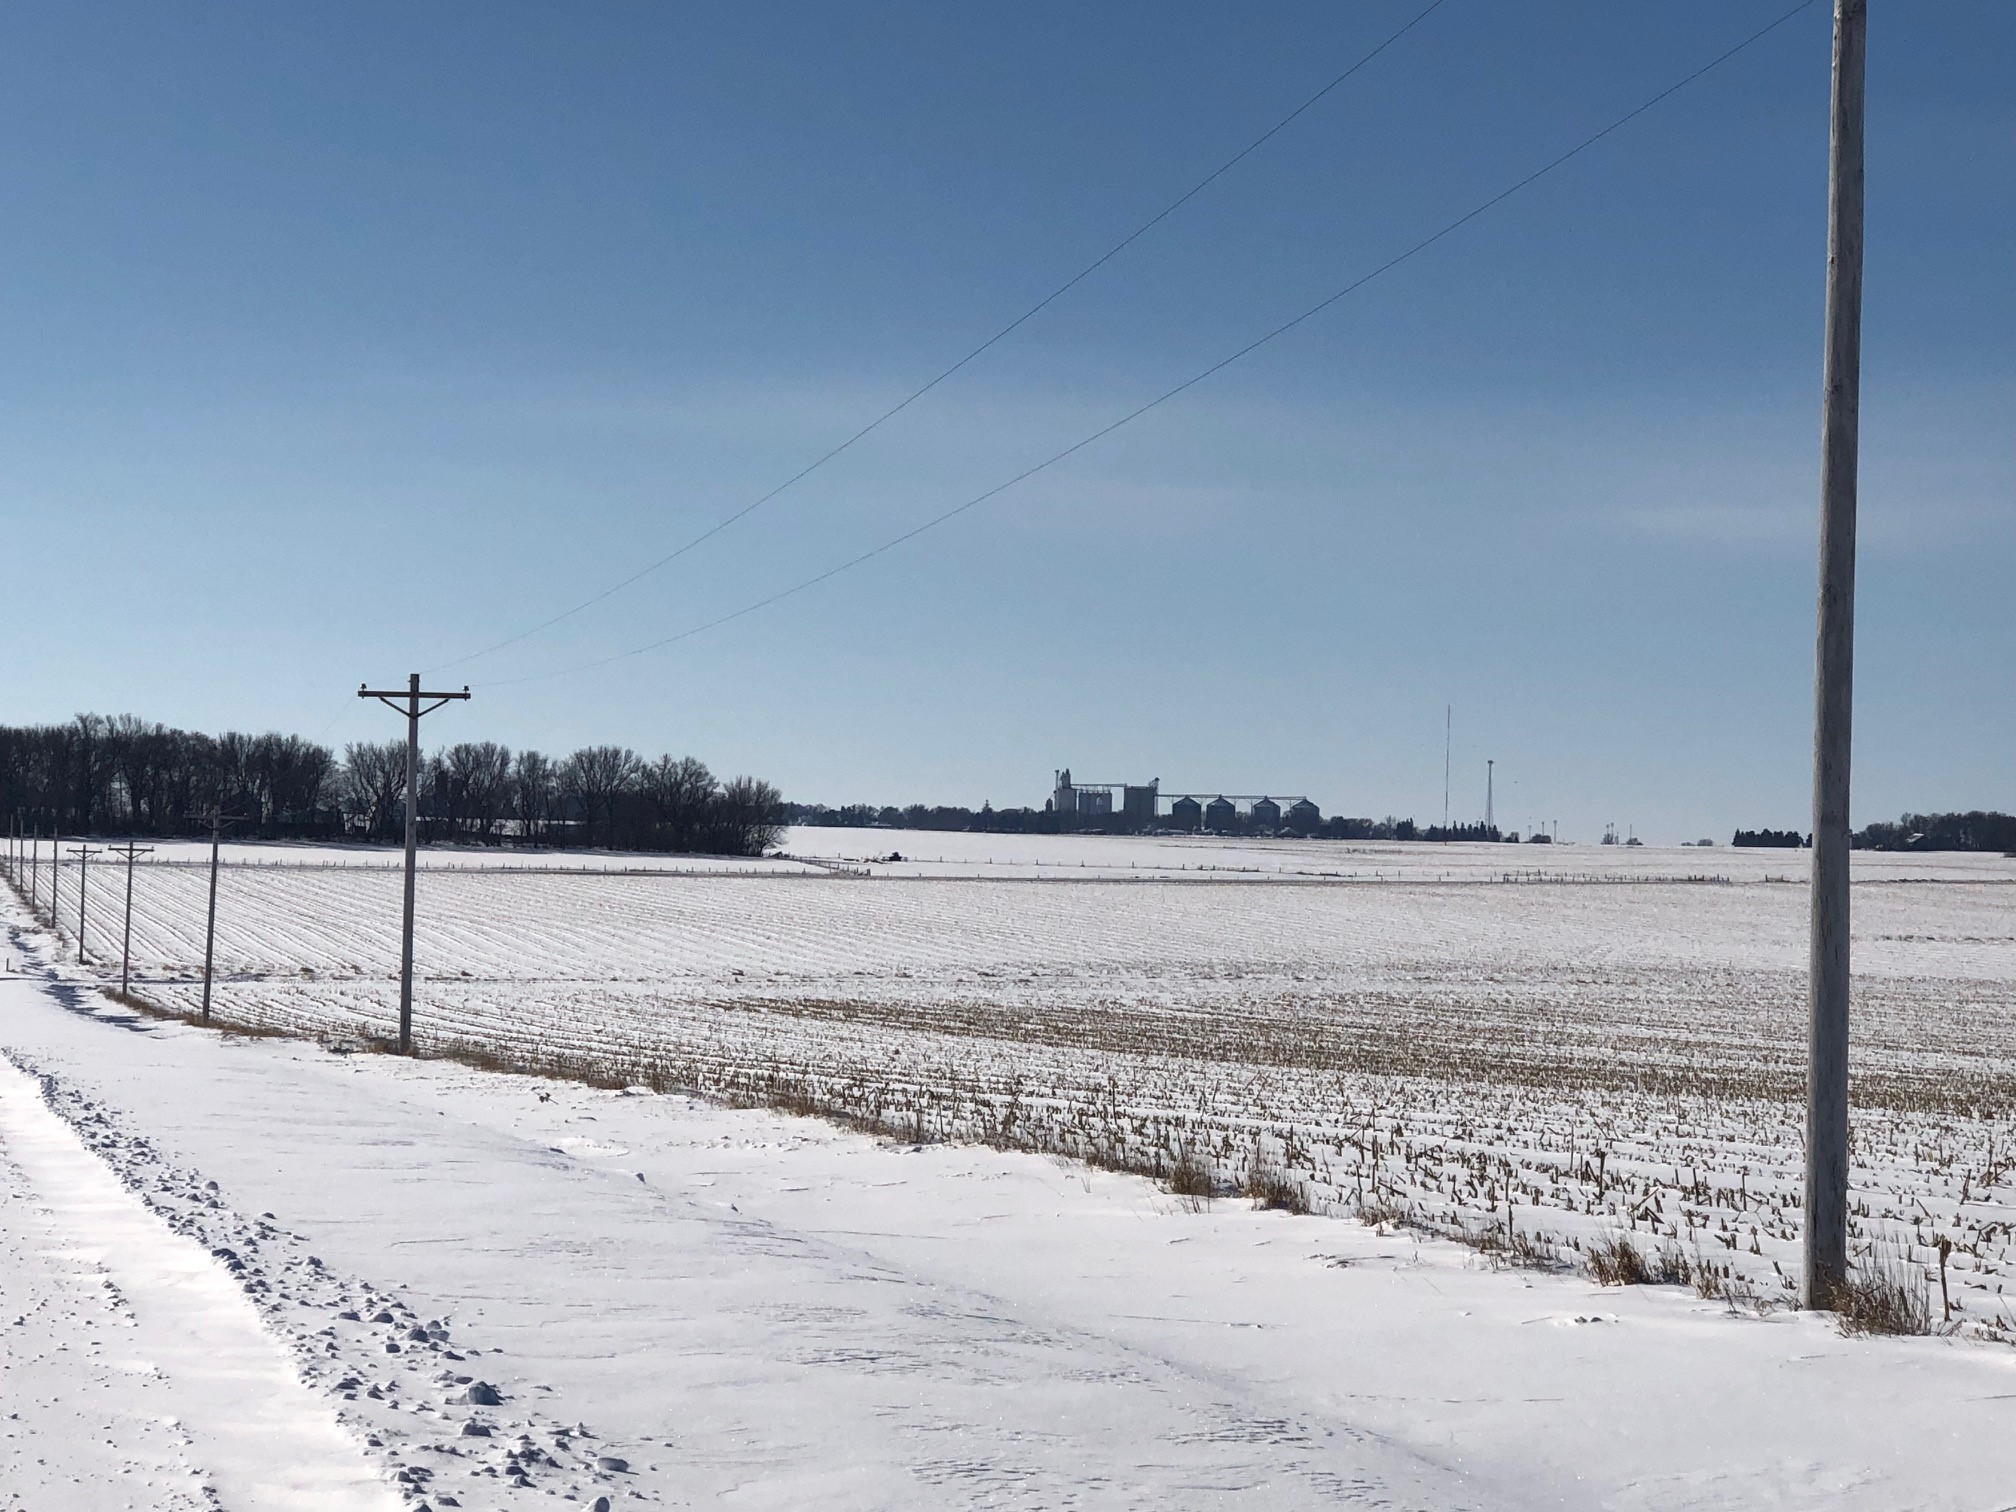 February on the Oswald family farm in Cleghorn. Photo credit: Tom Oswald